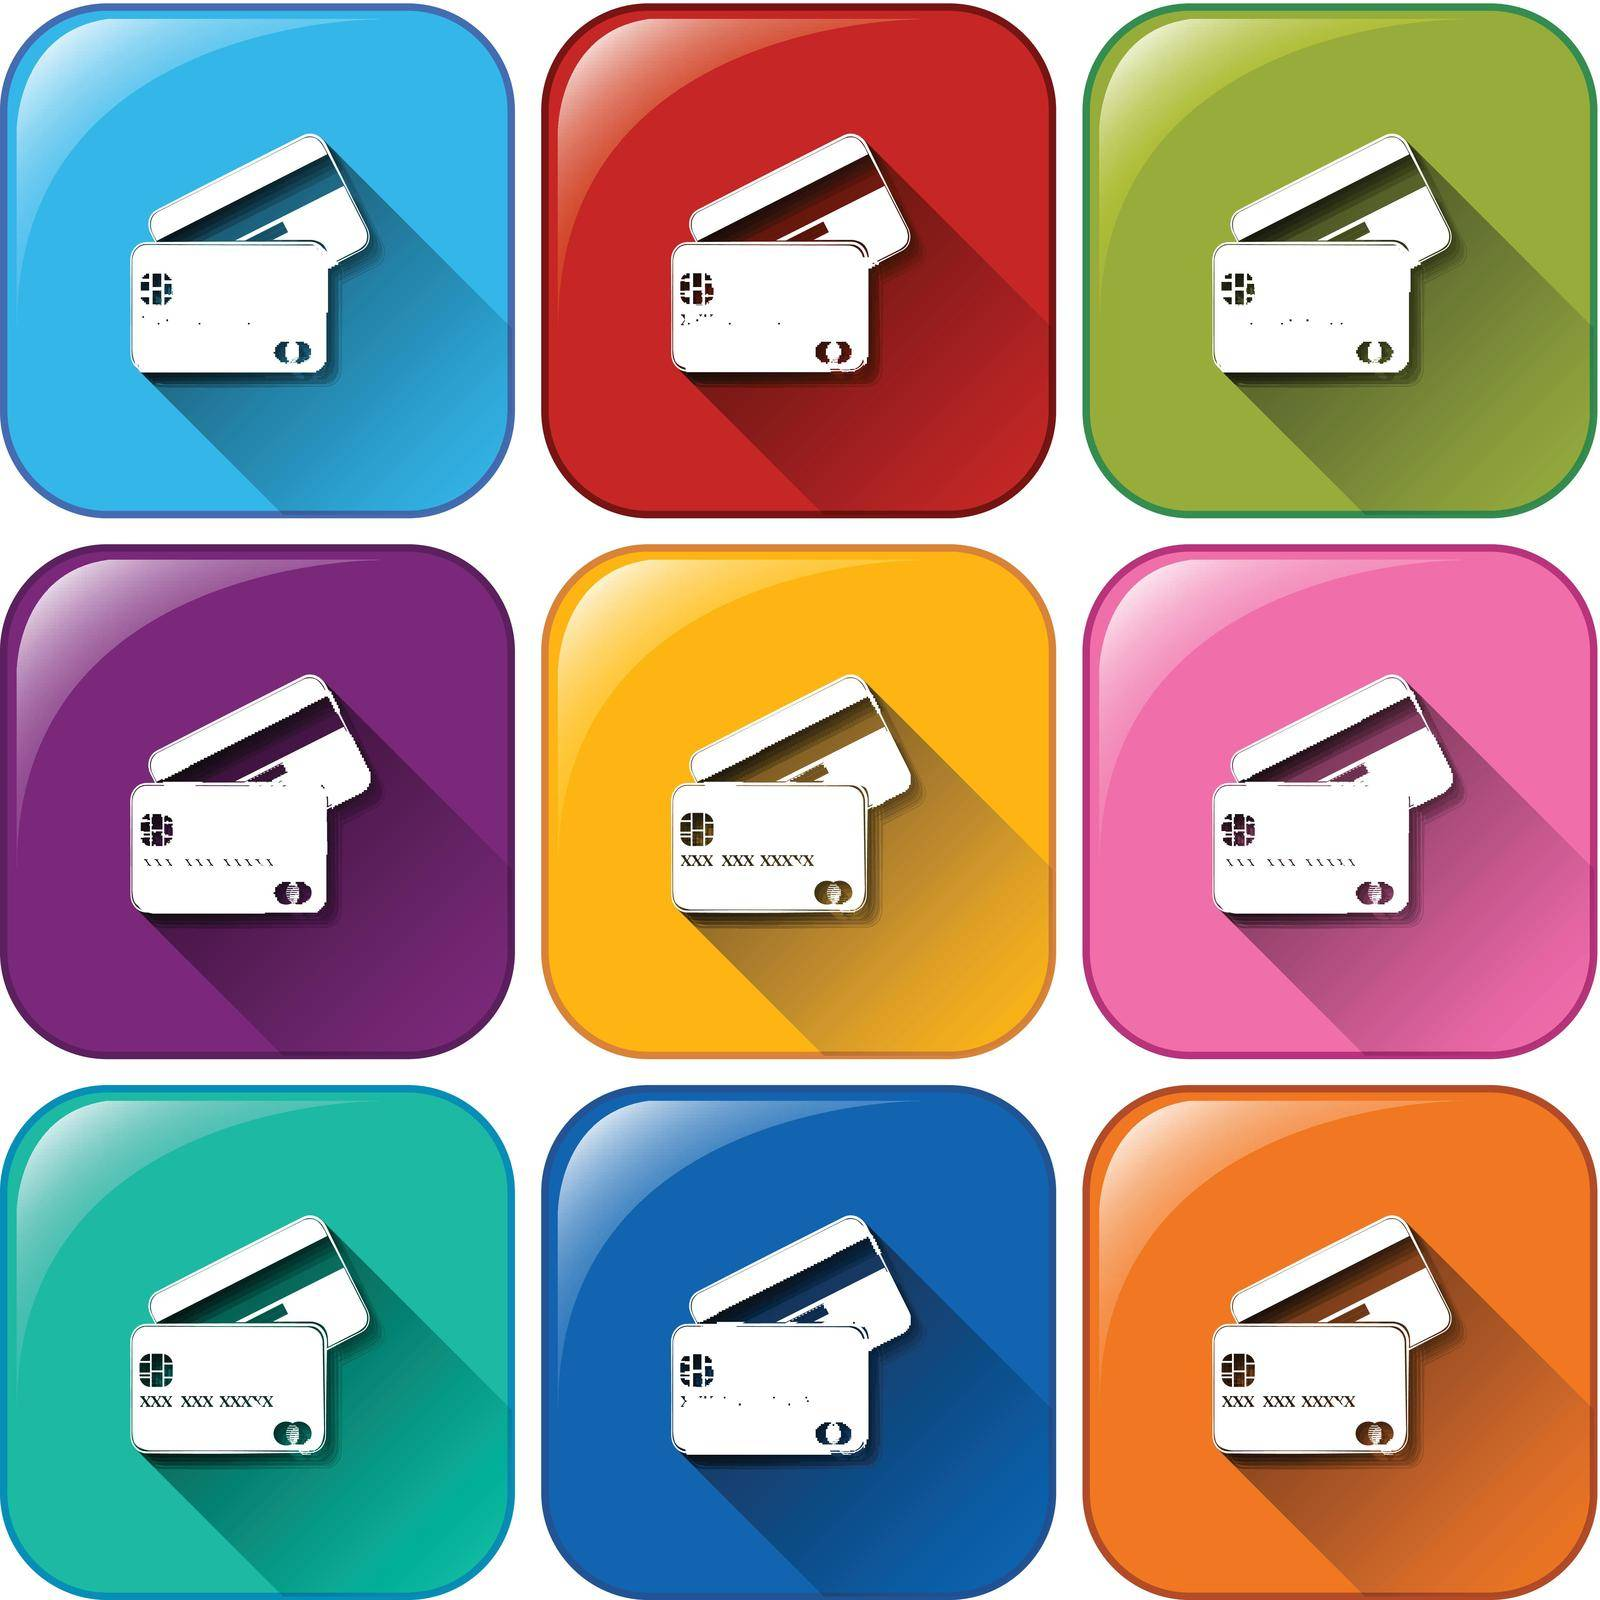 Illustration of the rounded icons with cards on a white background